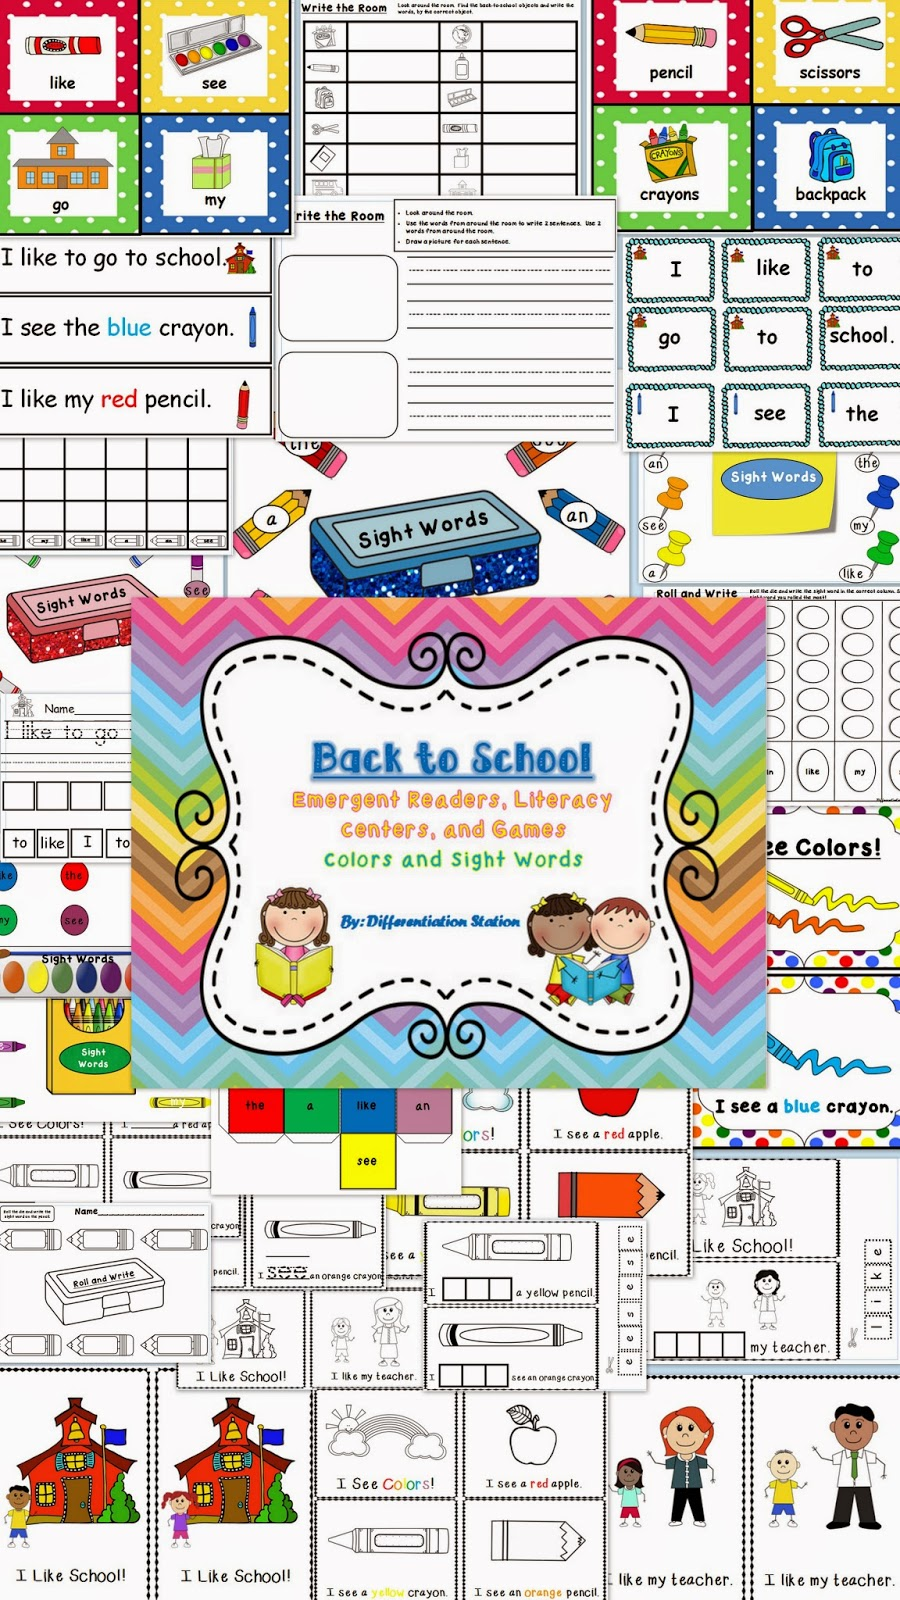 http://www.teacherspayteachers.com/Product/Back-to-School-Emergent-Readers-Literacy-Centers-and-Games-731994